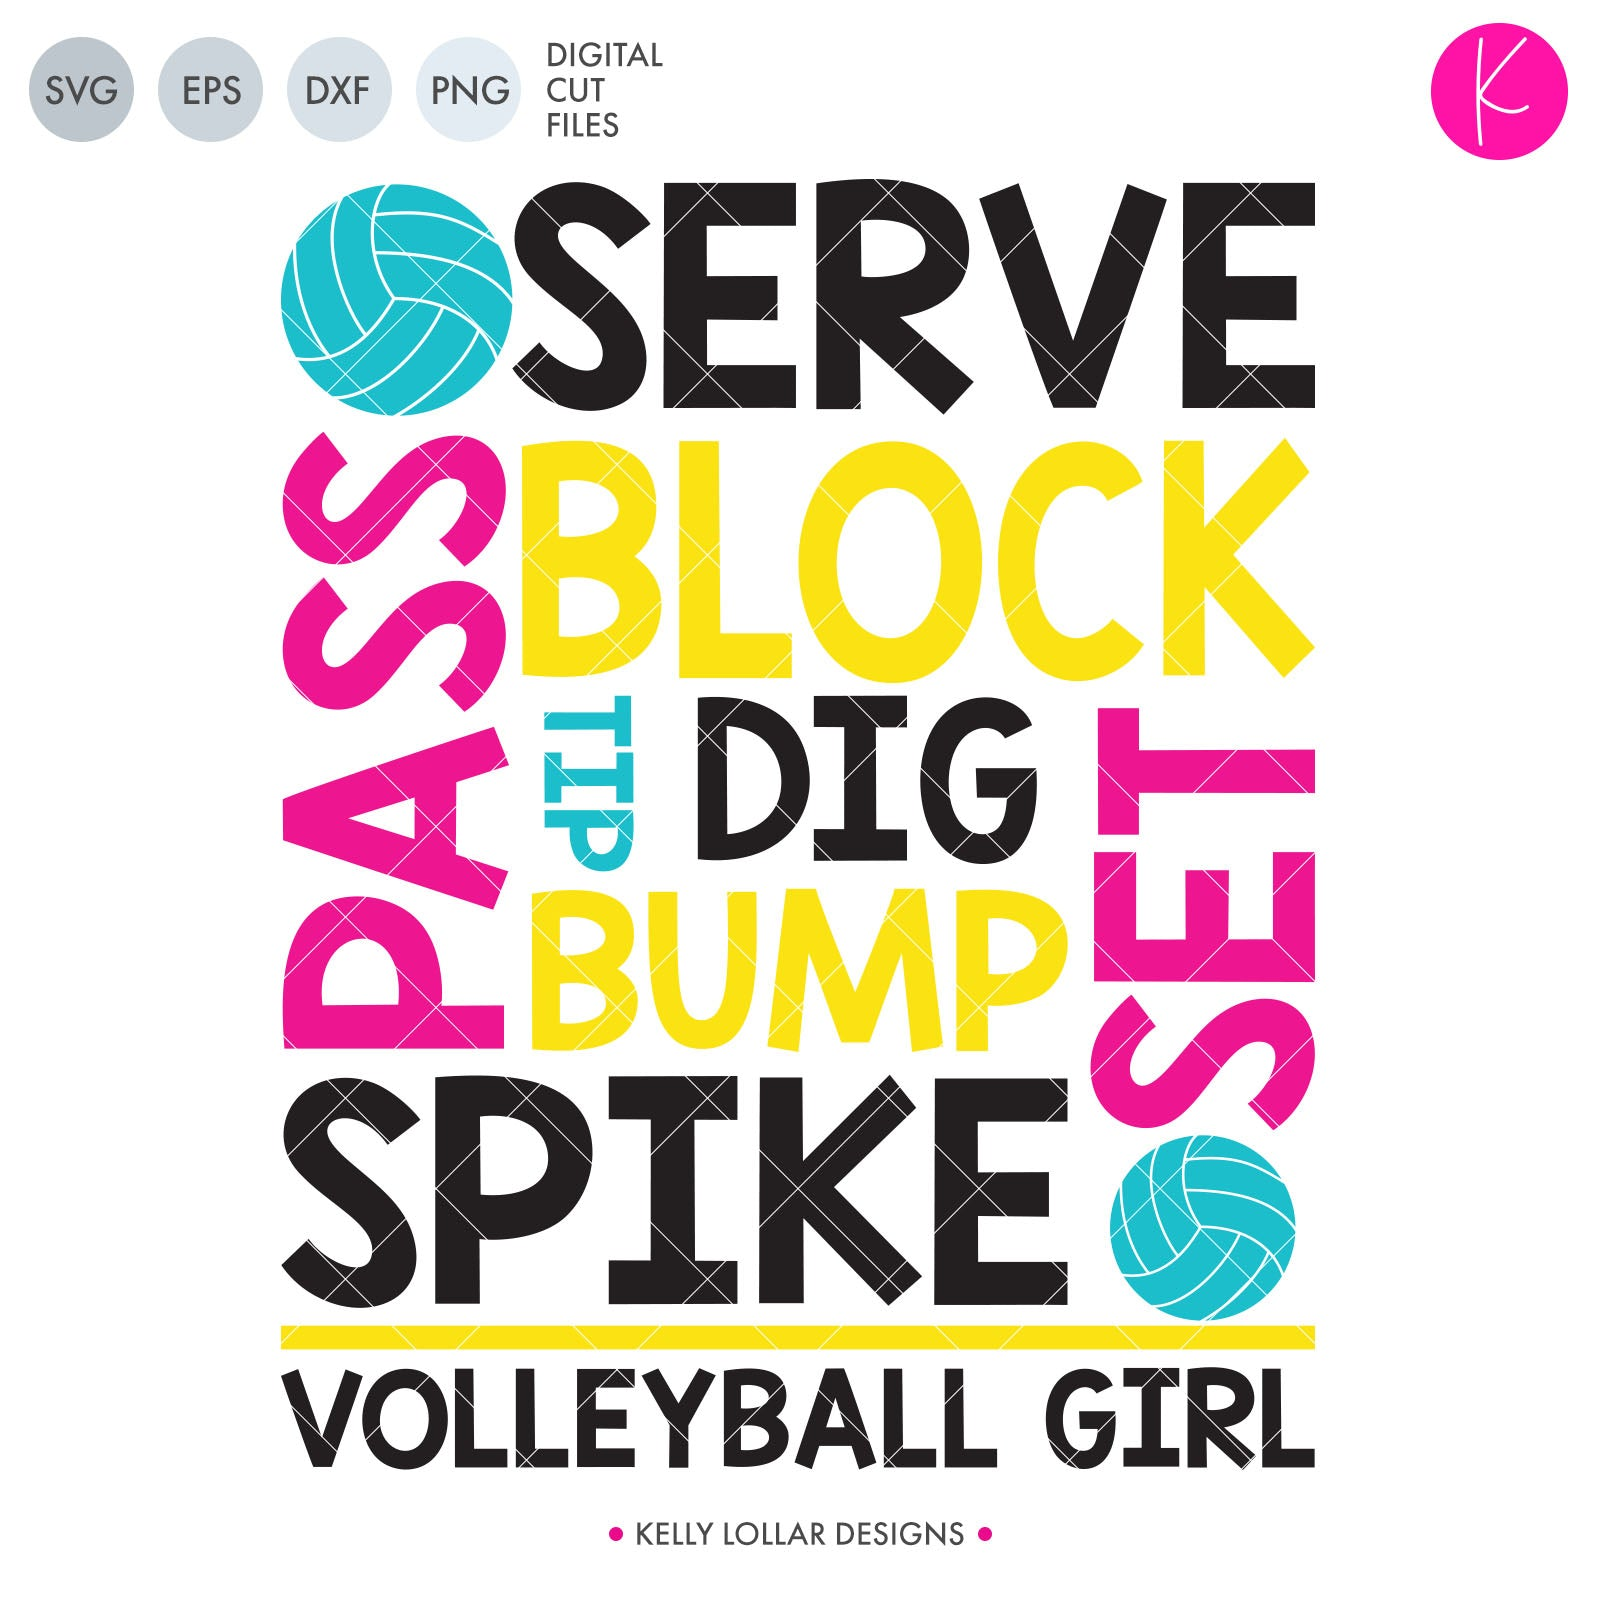 Volleyball Girl svg file - Volleyball Typography of Terms and Volleyball Girl Quote with Volleyballs for Accents | SVG DXF PNG Cut Files